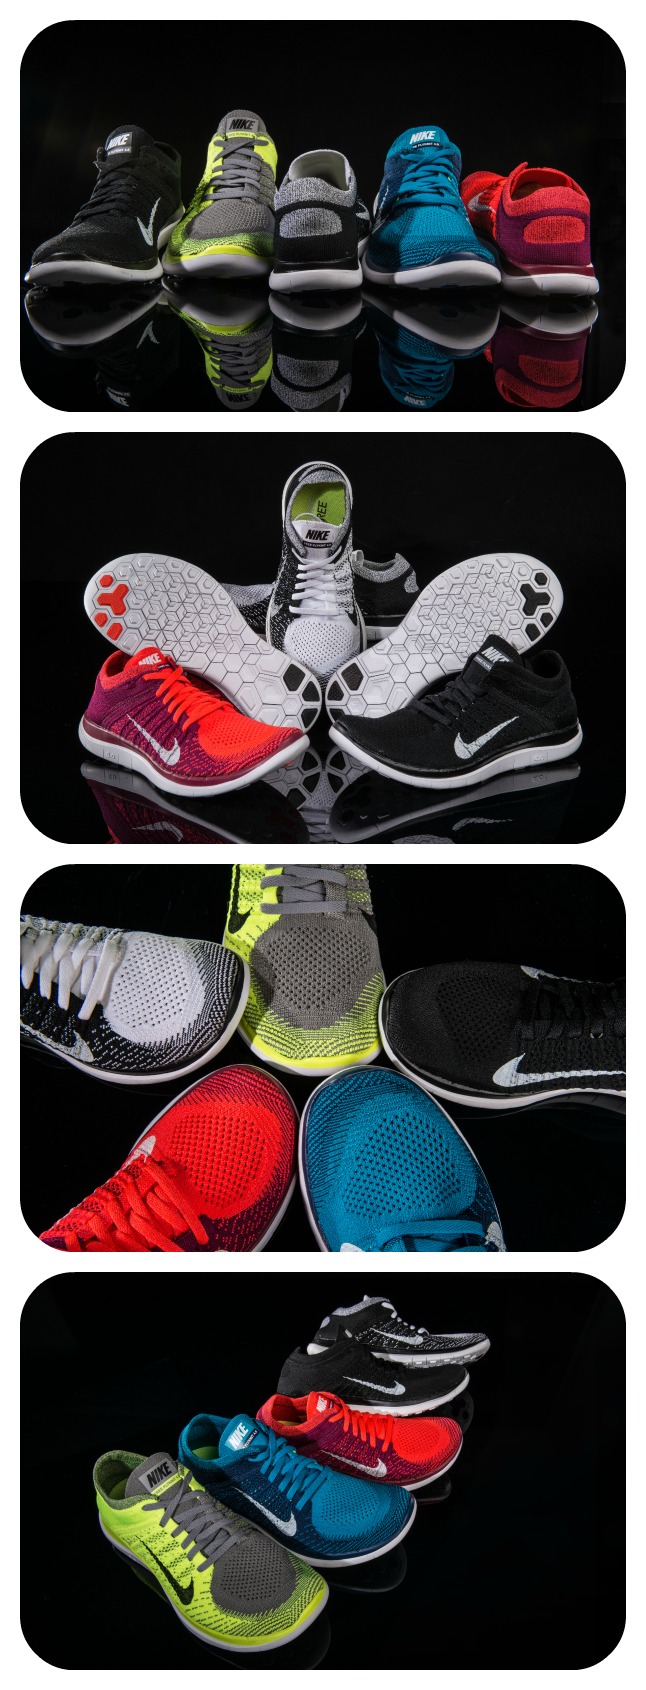 Nike serves up the latest offering from their Free 2014 Running Collection. The Free 4.0 Flyknit is available now!